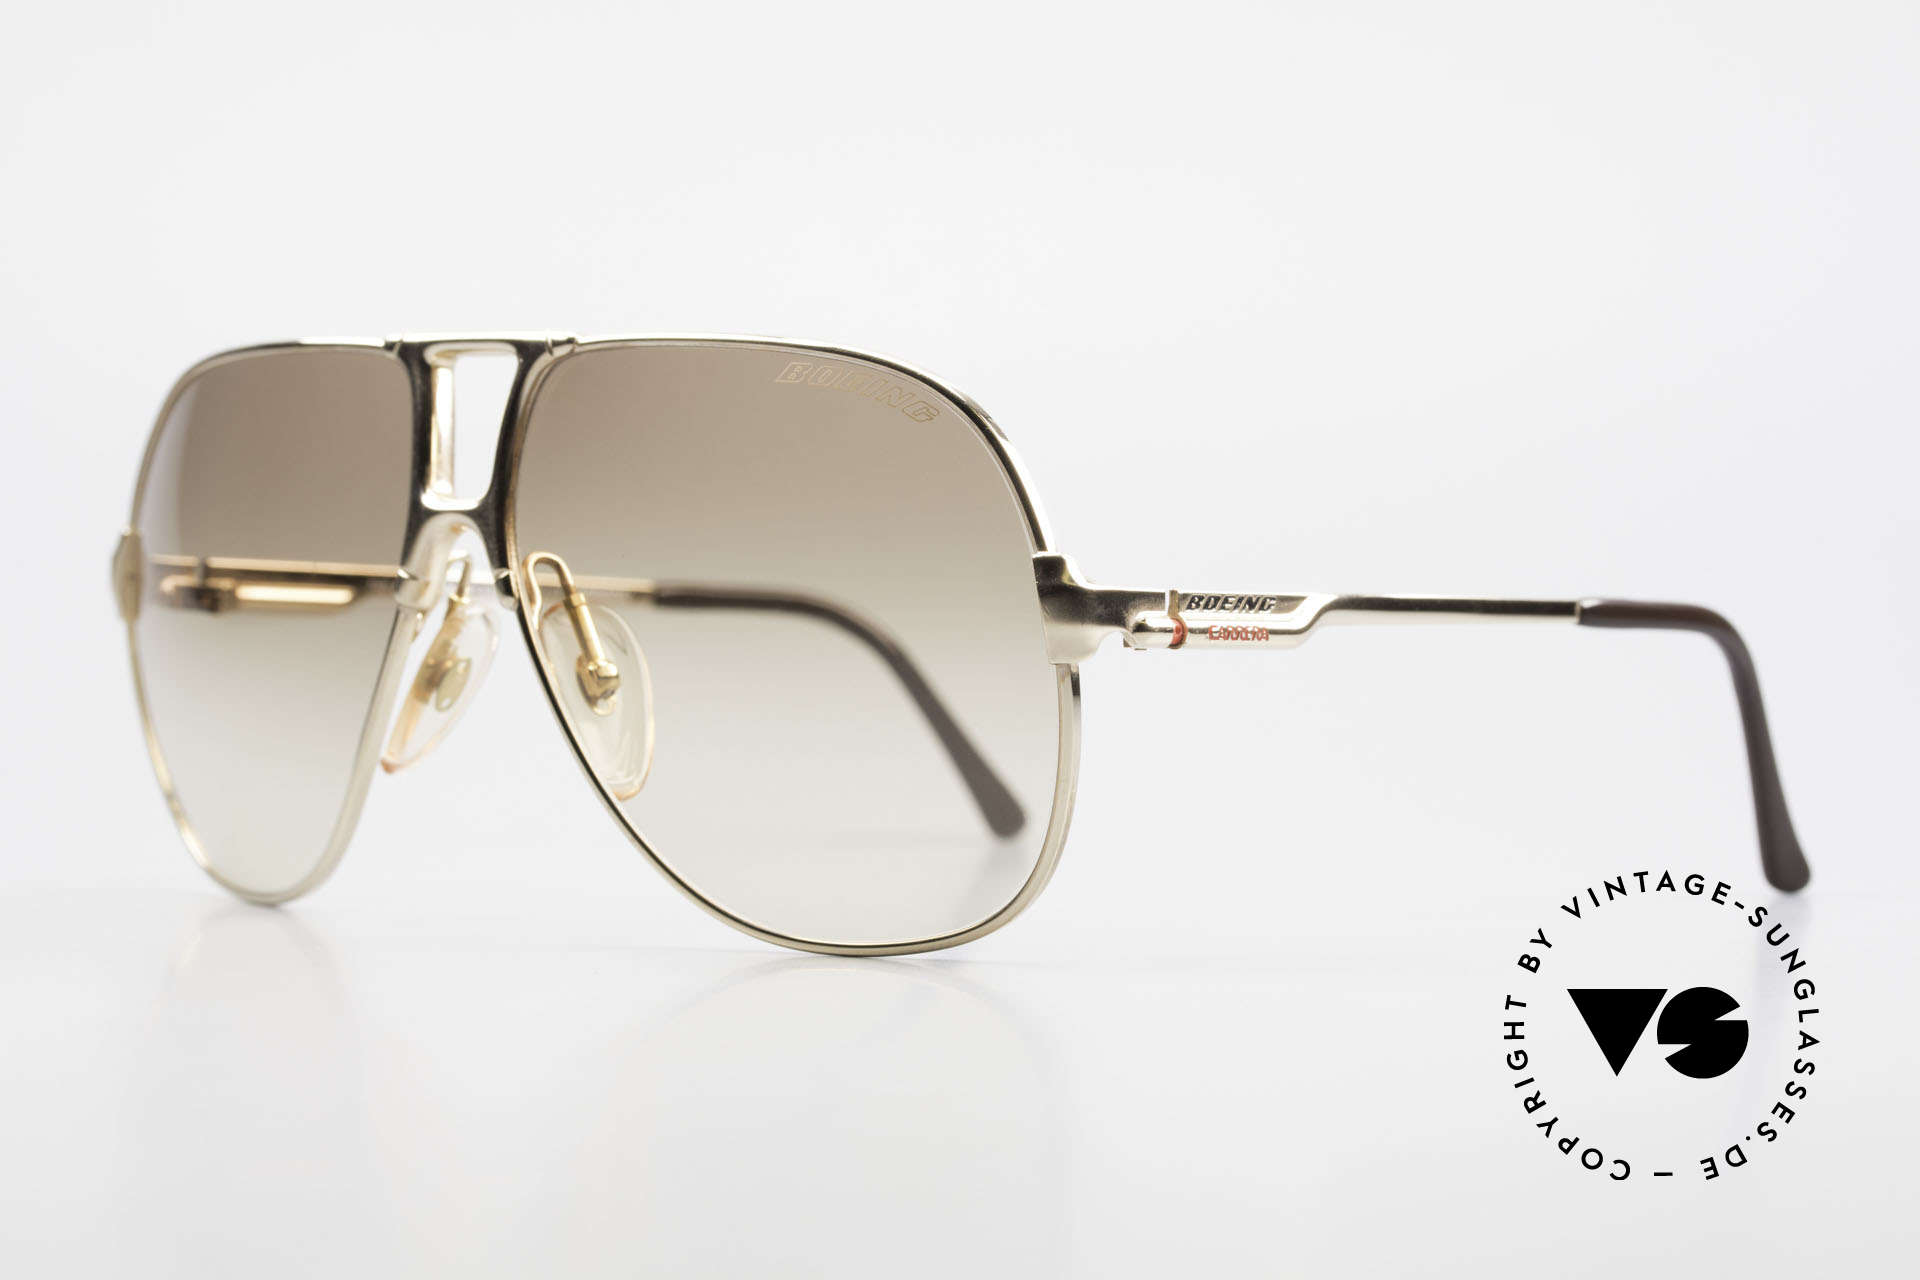 Boeing 5700 Famous 80's Pilots Shades, hybrid between functionality, quality and lifestyle, Made for Men and Women